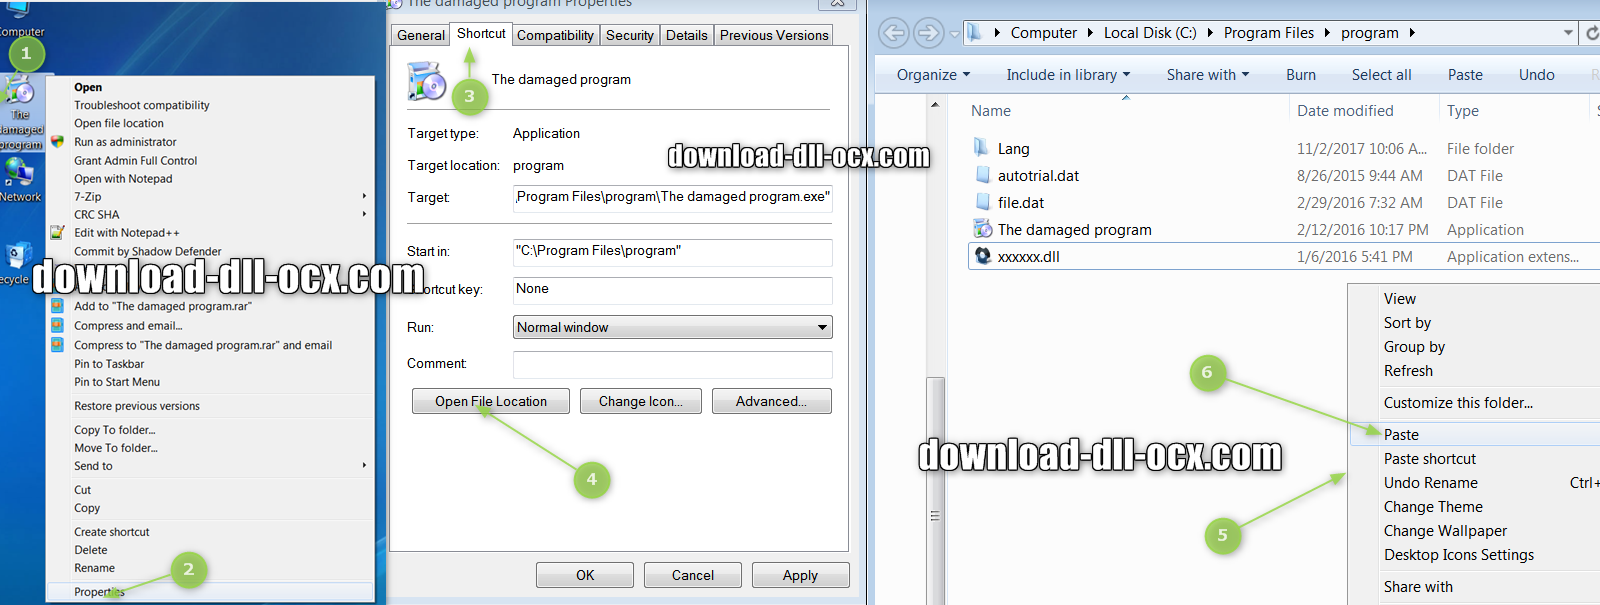 how to install Comuid.dll file? for fix missing